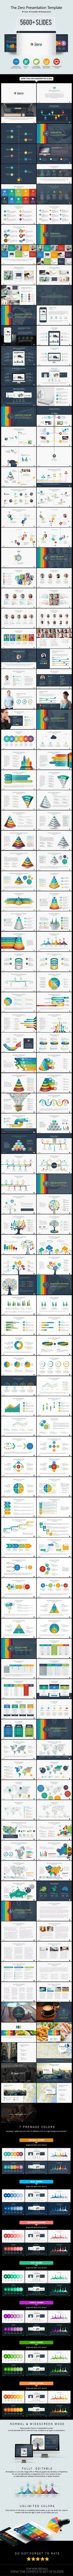 The Zero Business Infographic Presentation Template #powerpoint #powerpointtemplate Download: http://graphicriver.net/item/the-zero-business-infographic-presentation/9356038?ref=ksioks